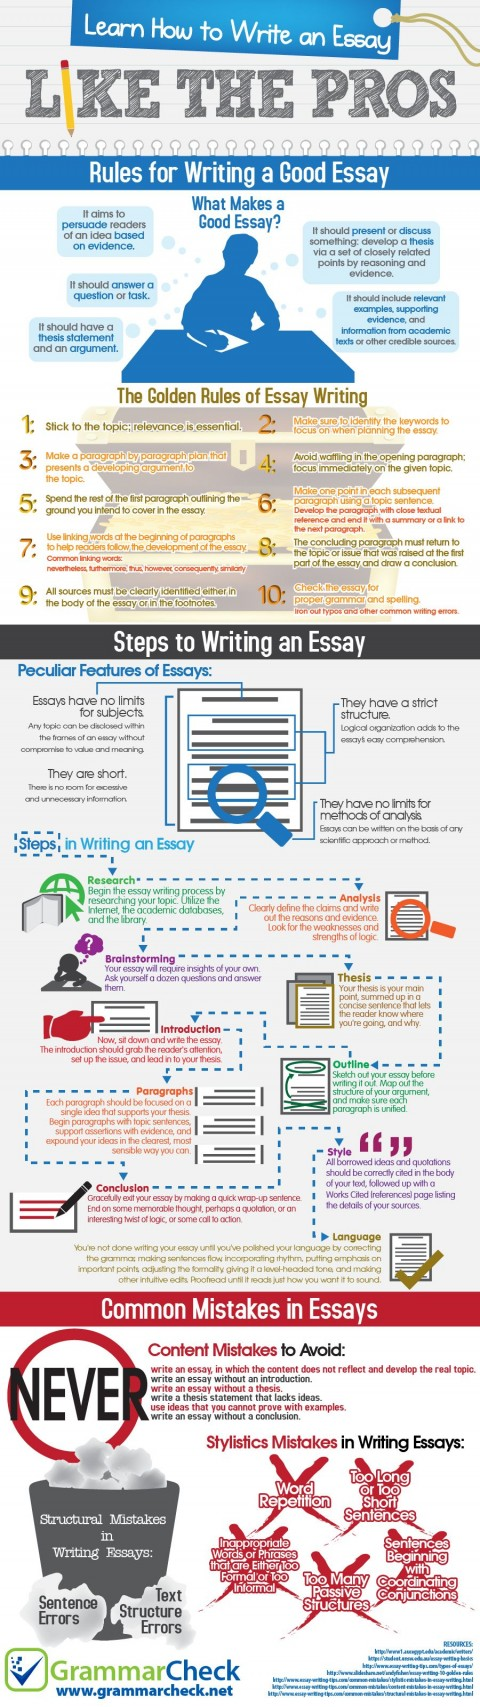 018 Write An Essay For Me Surprising Meaning In Gujarati Free My Online 480